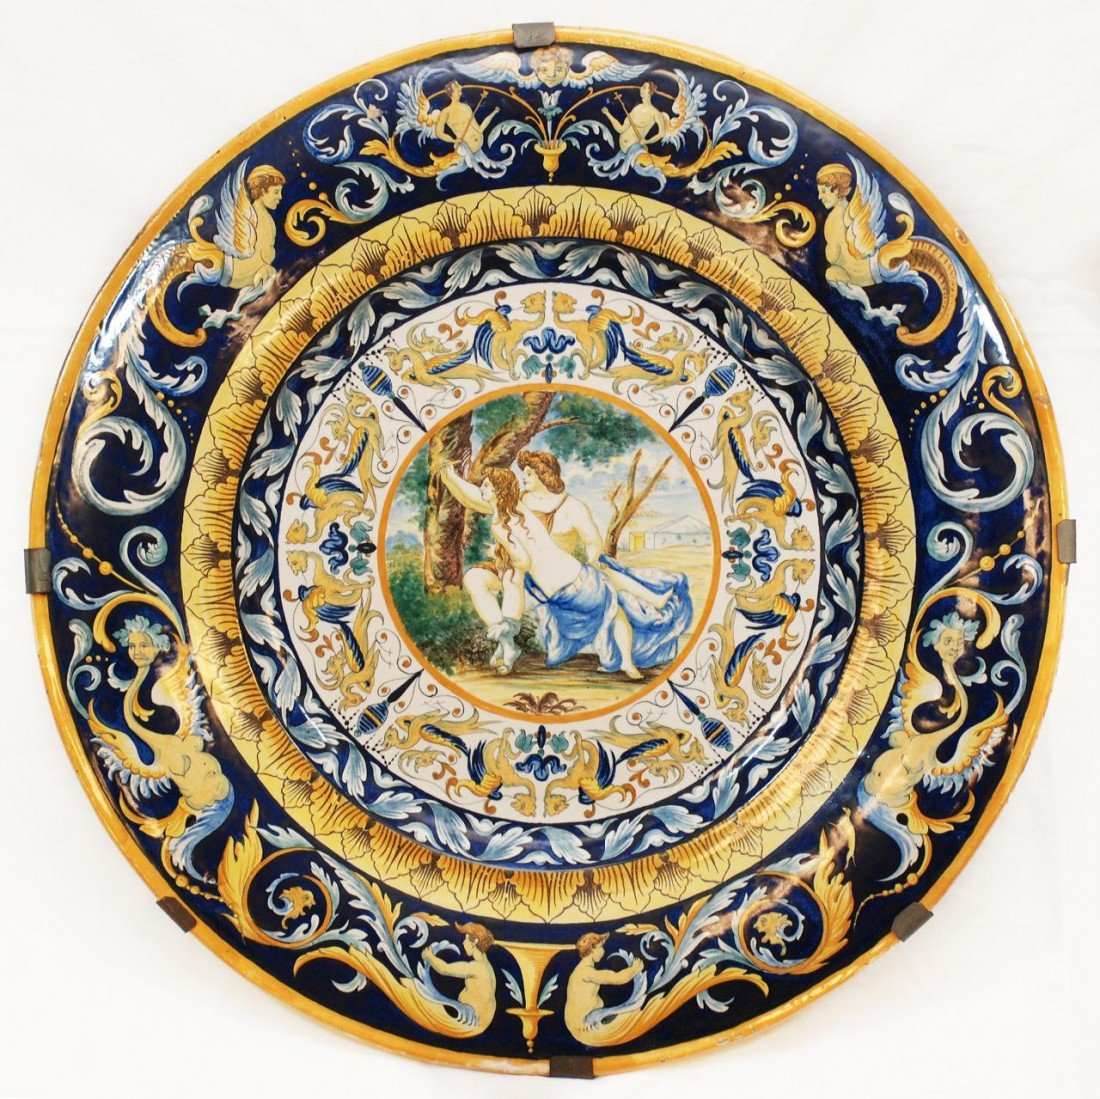 19: LARGE 19th C. ITALIAN MAJOLICA PORCELAIN CHARGER